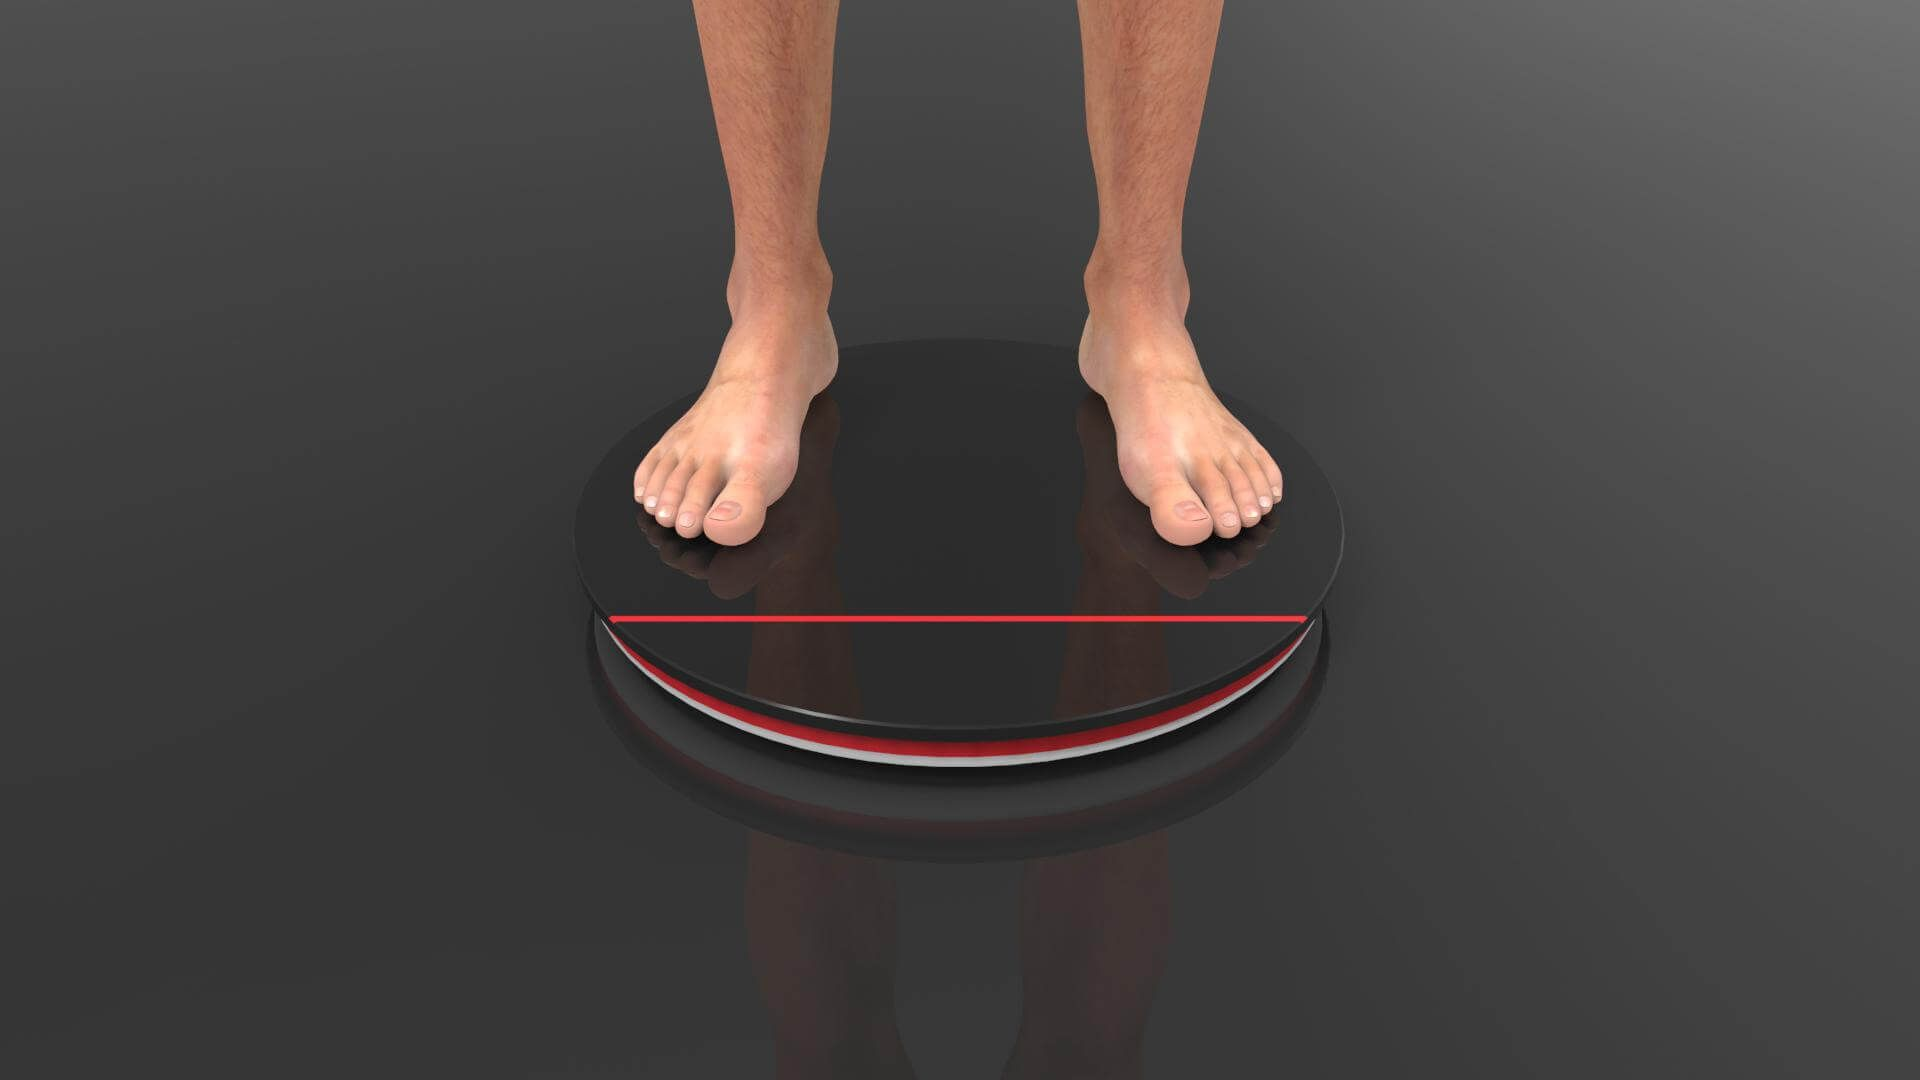 Shape Scale - Scan Your Body in 3D!